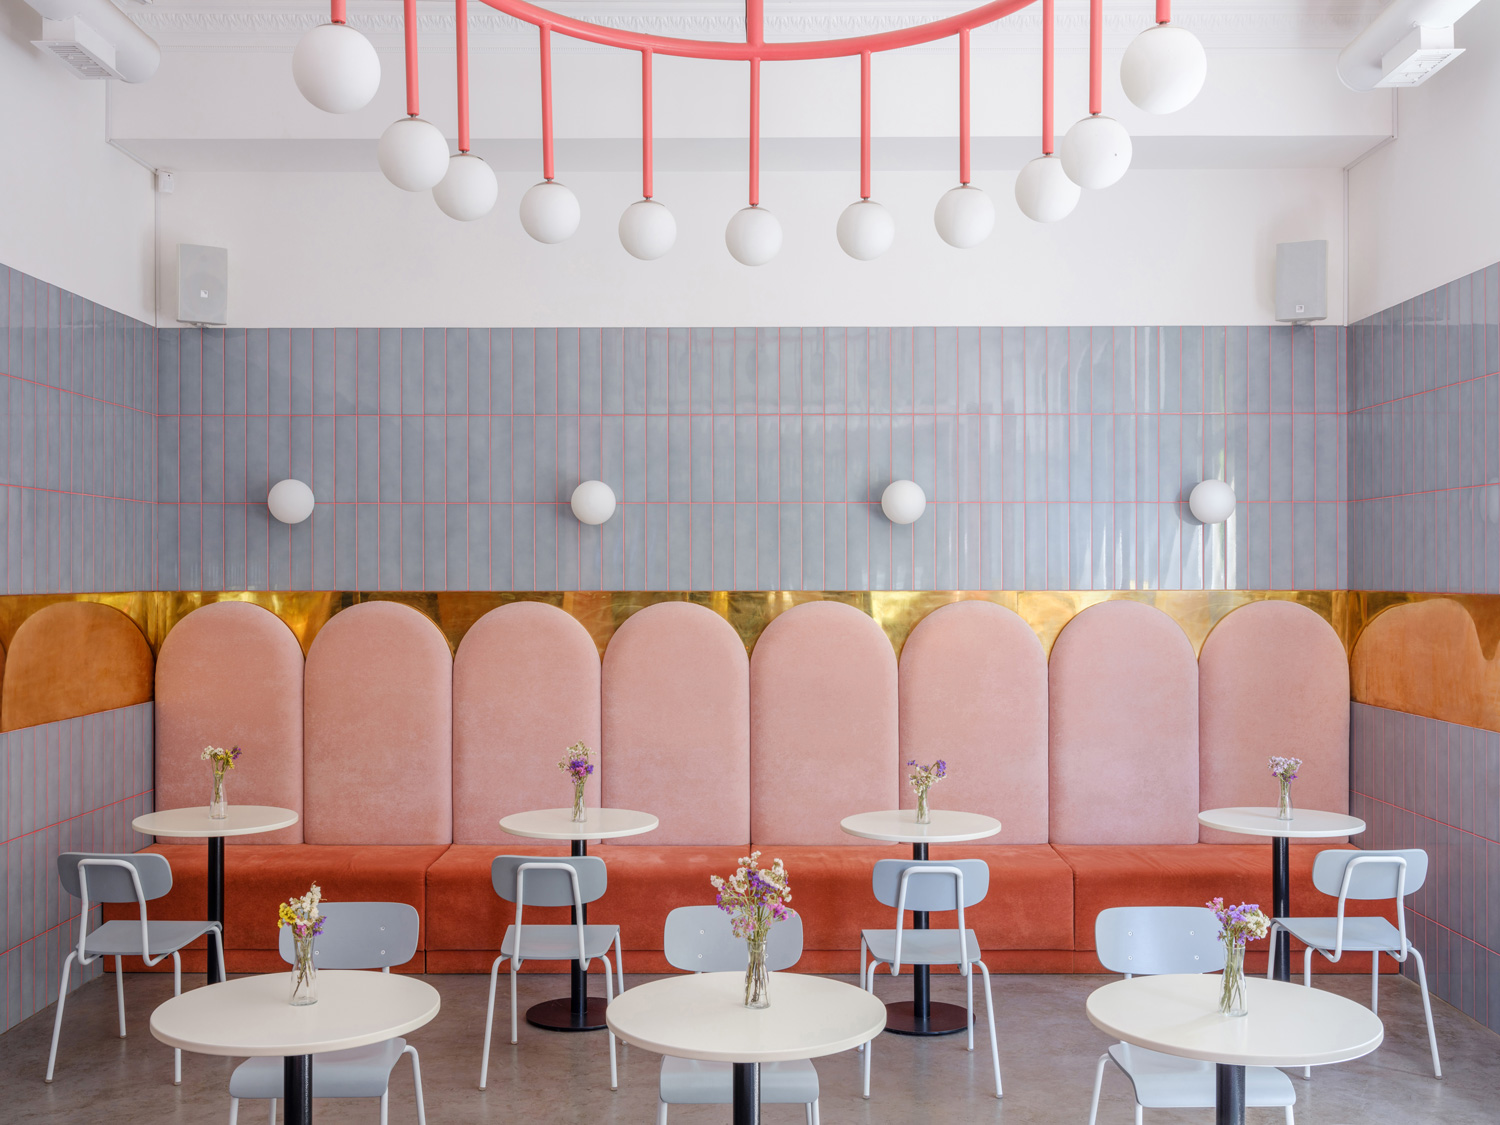 bakery interior design with living coral accents